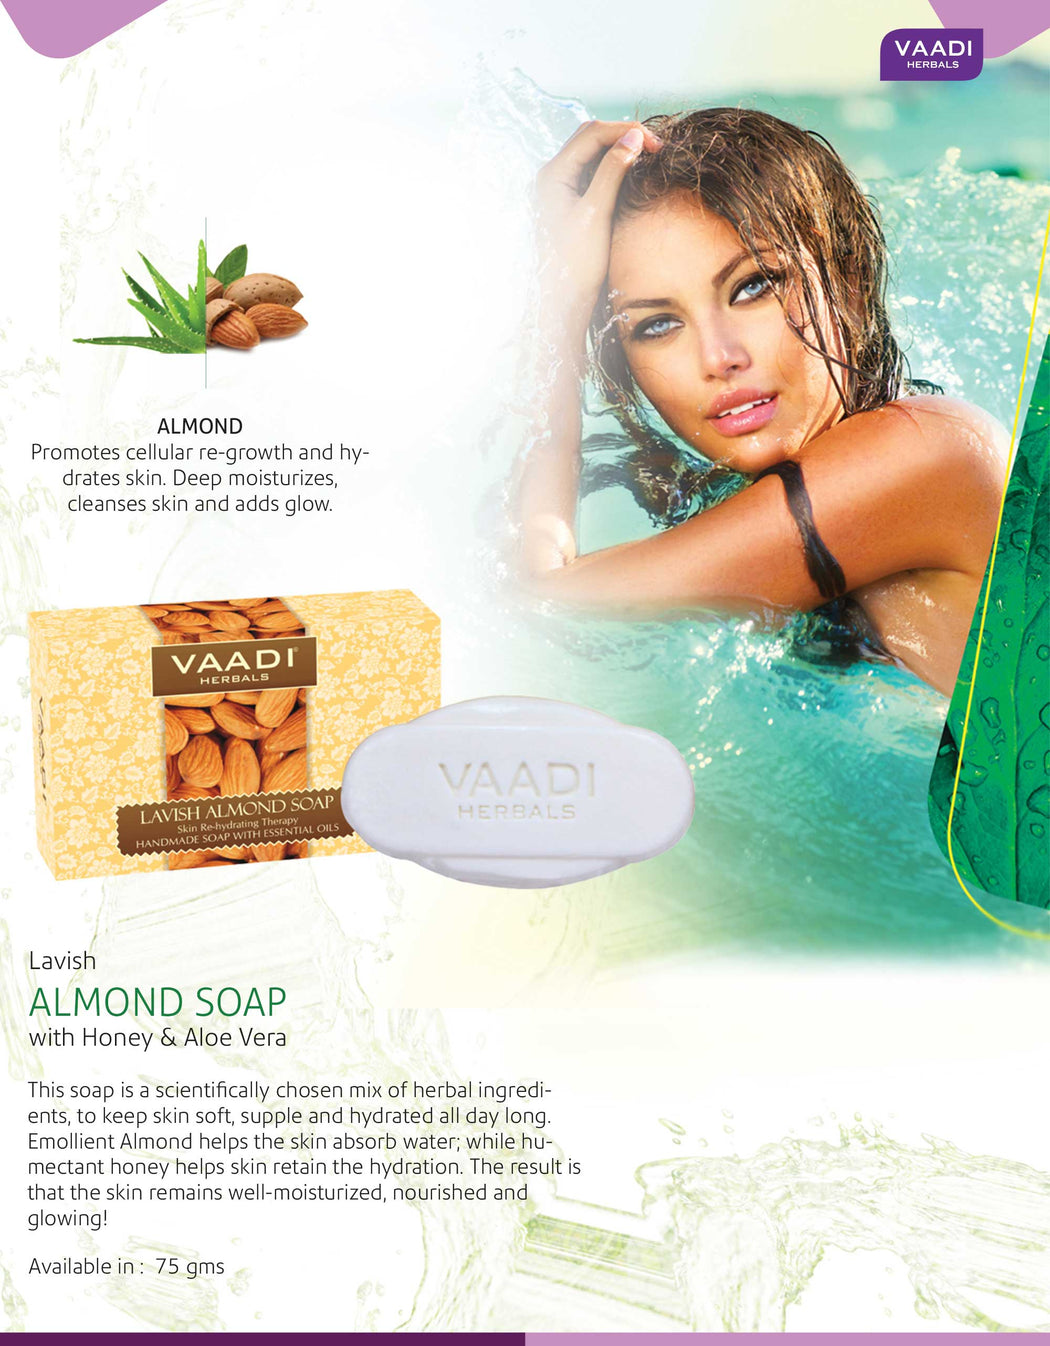 Rehydrating Organic Lavish Almond Soap with Honey & Aloe Vera - Improves Complexion - Keeps Skin Nourished (6 x 75 gms/2.7 oz)